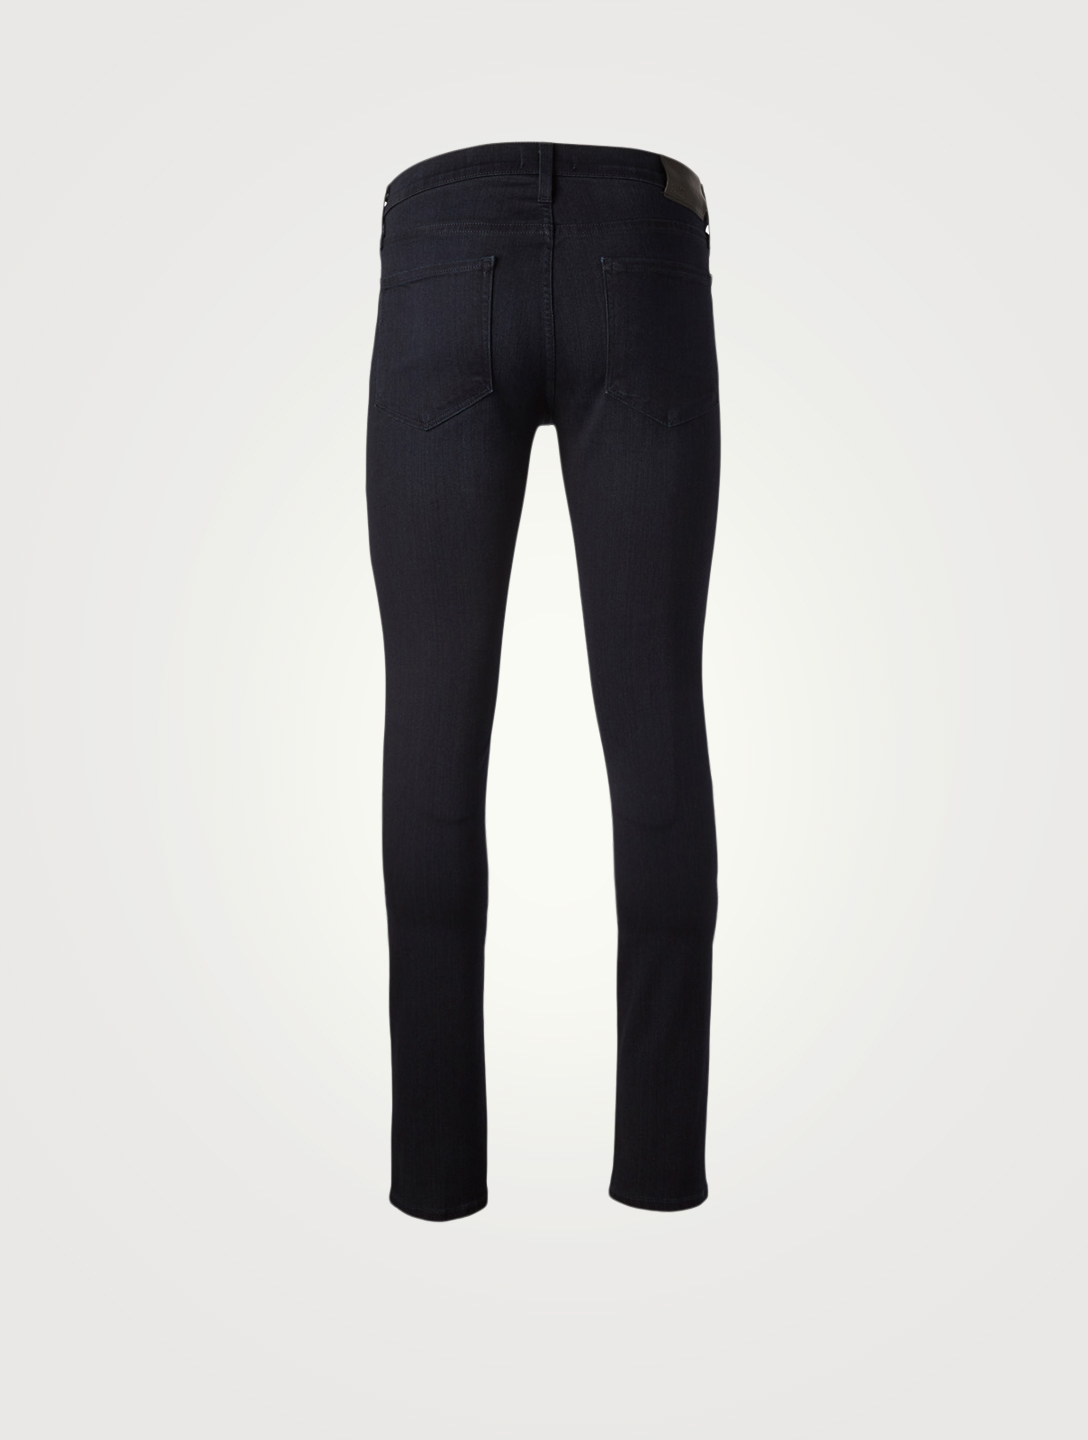 PAIGE Croft Skinny Jeans Men's Blue